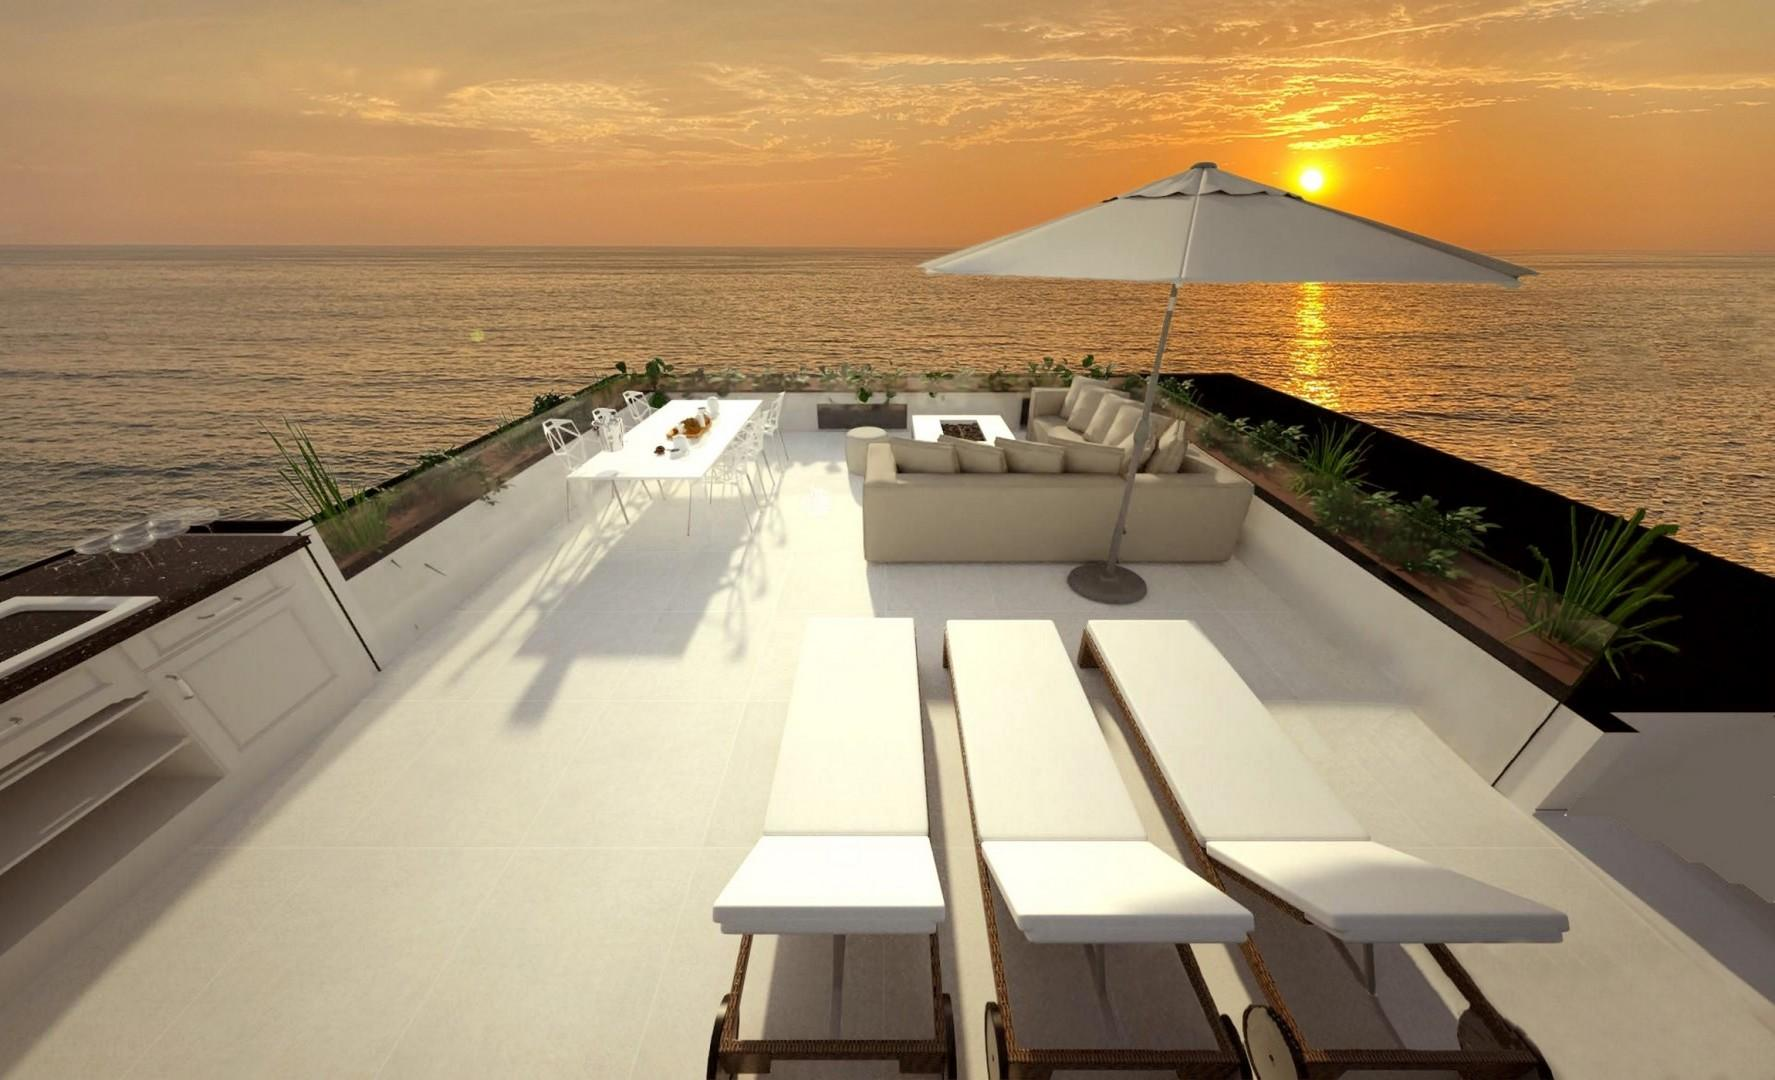 Rooftop dining and lounging